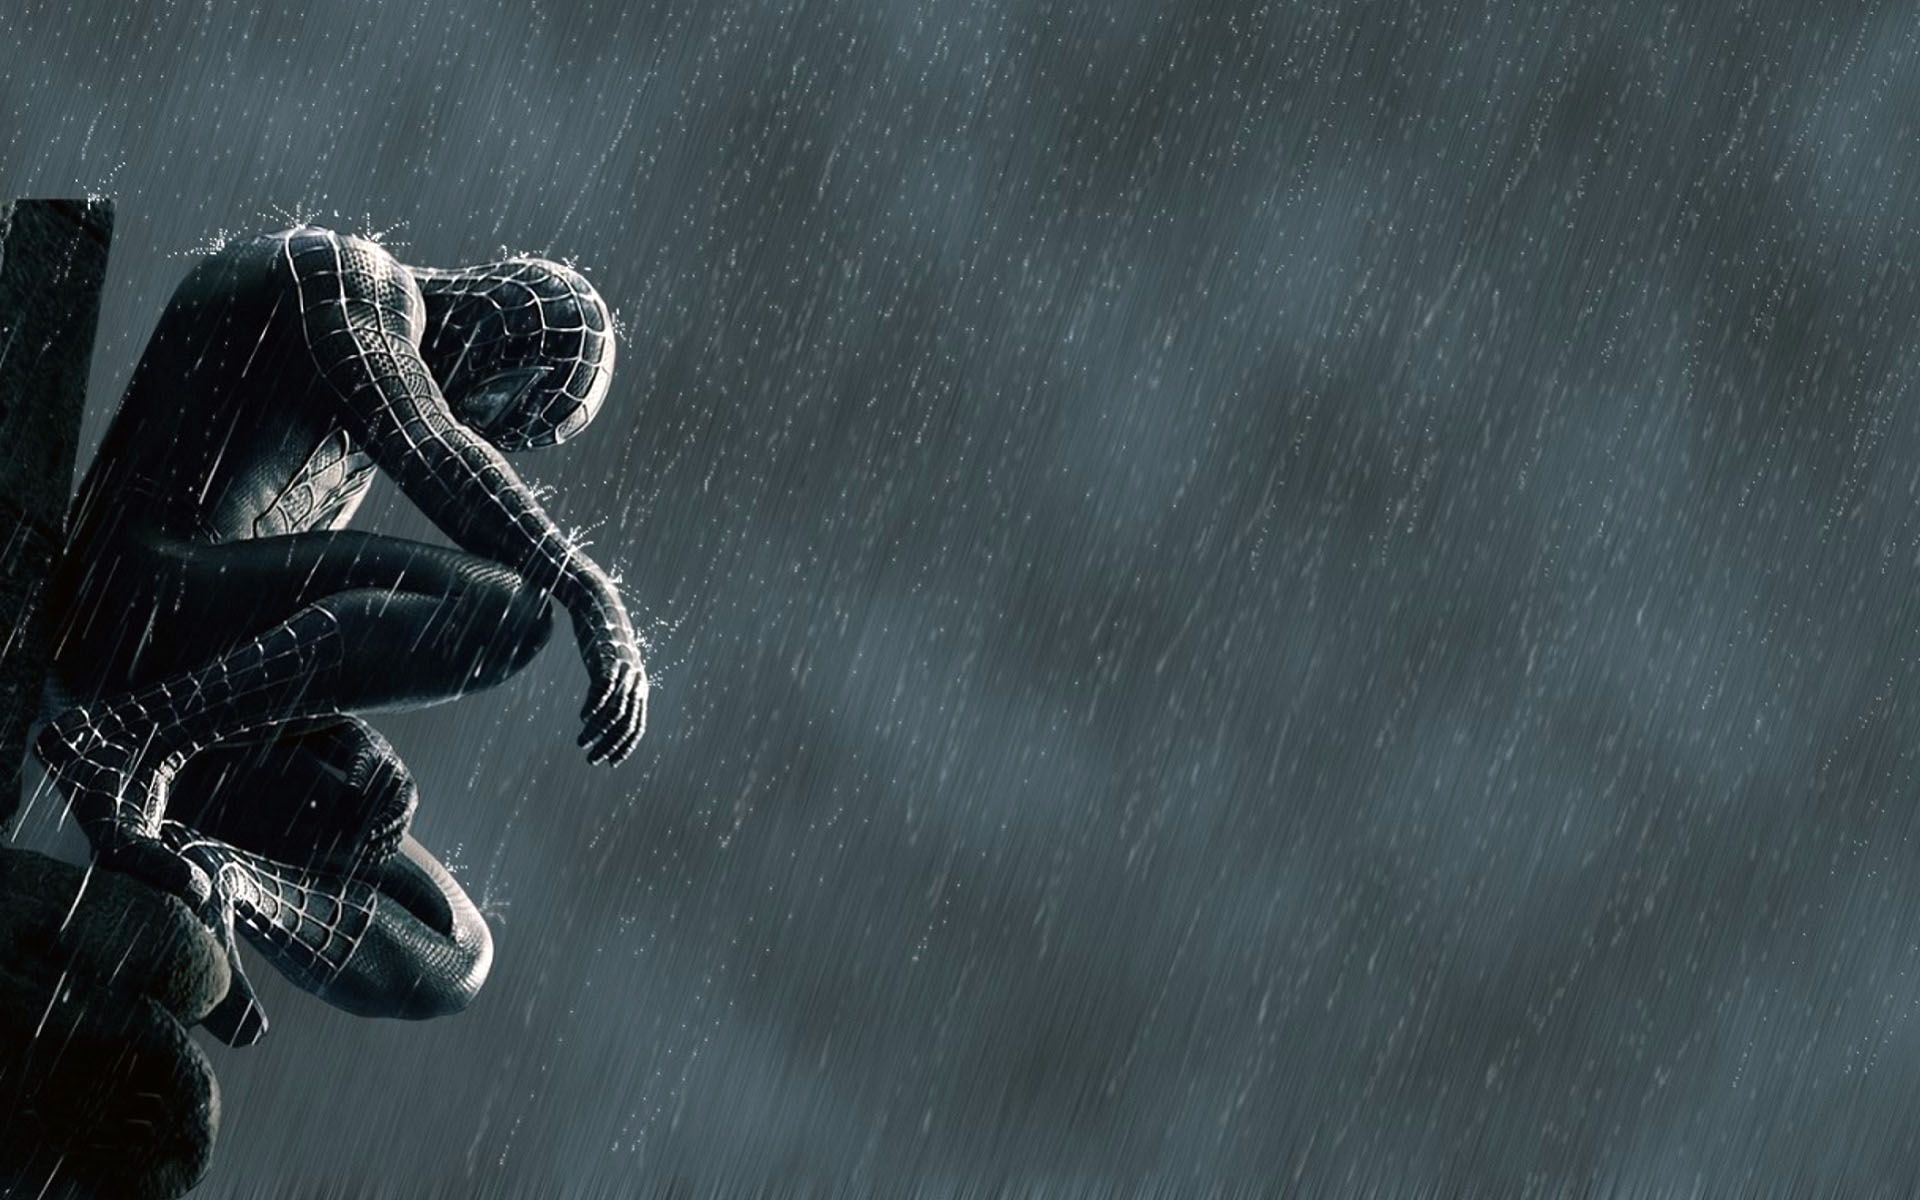 Black spider man wallpapers top free black spider man - Black and white spiderman wallpaper ...